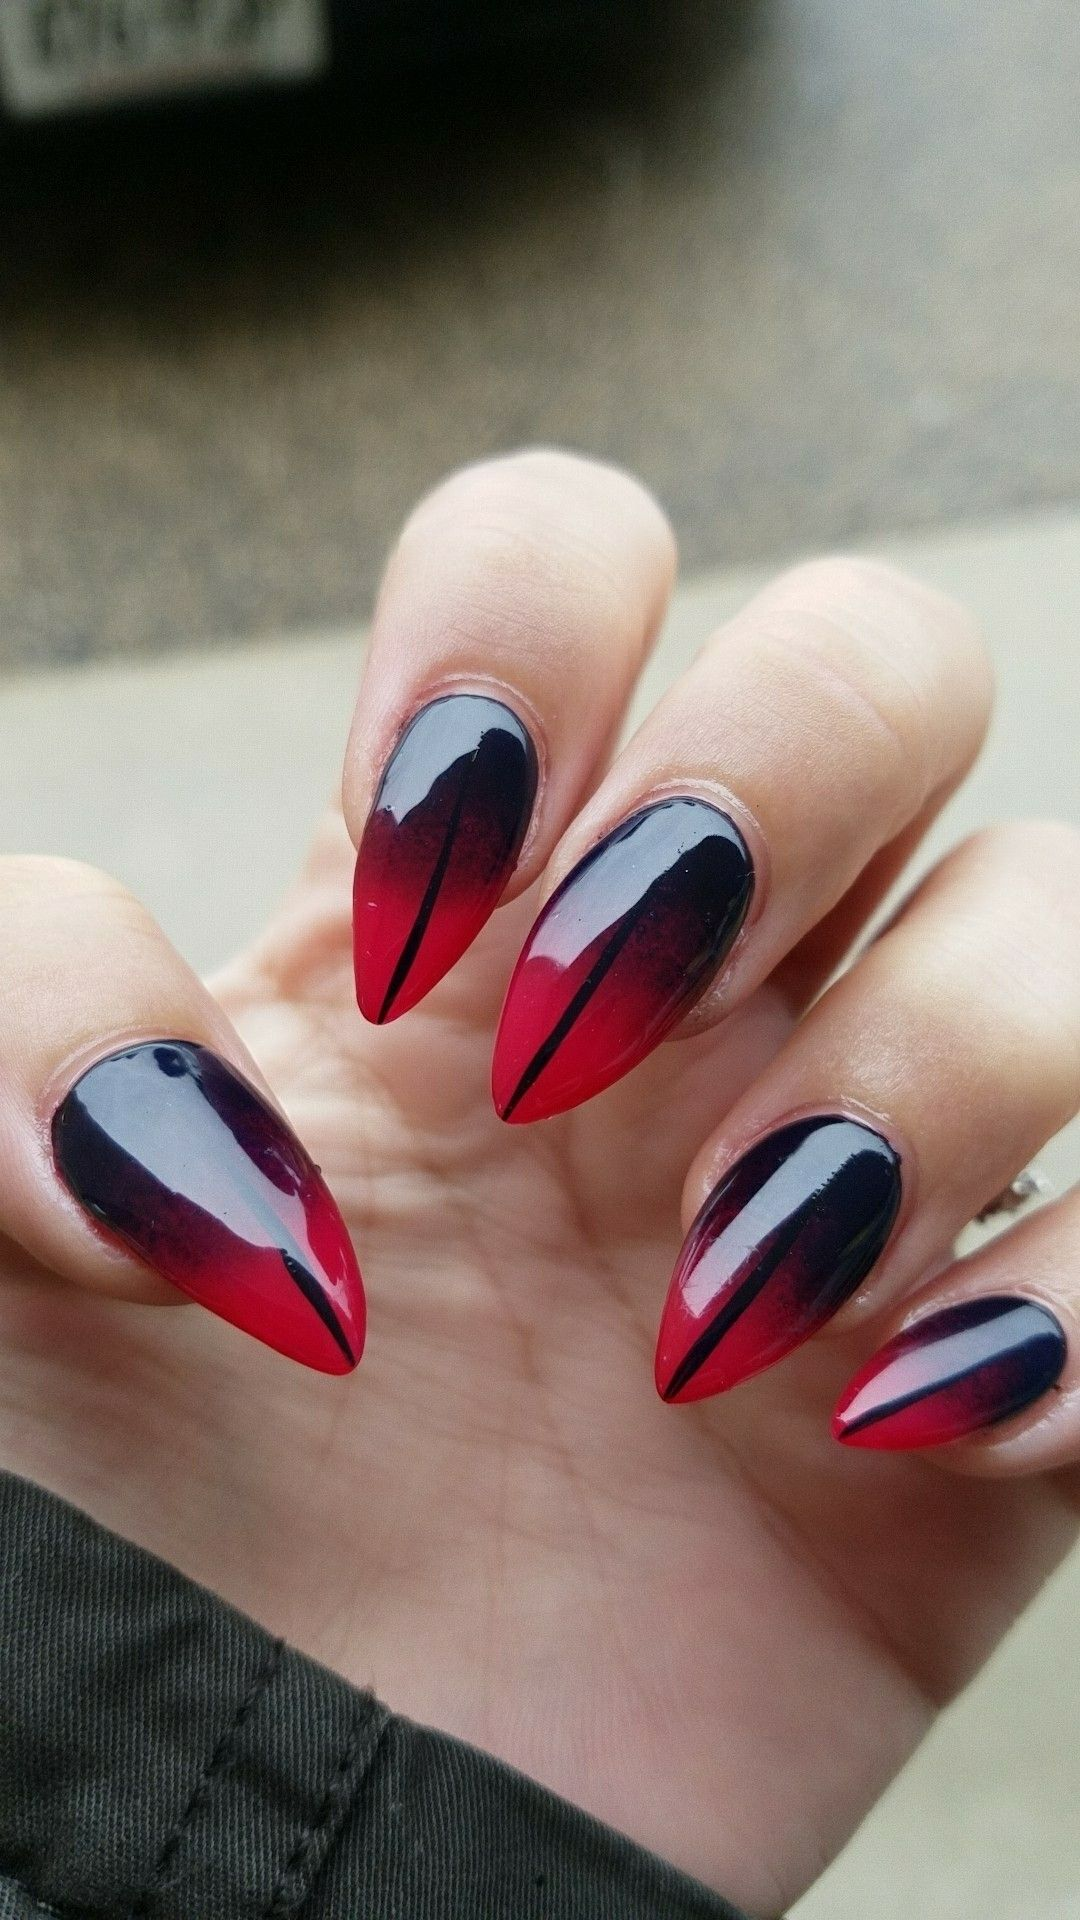 Ombre red and black nail design